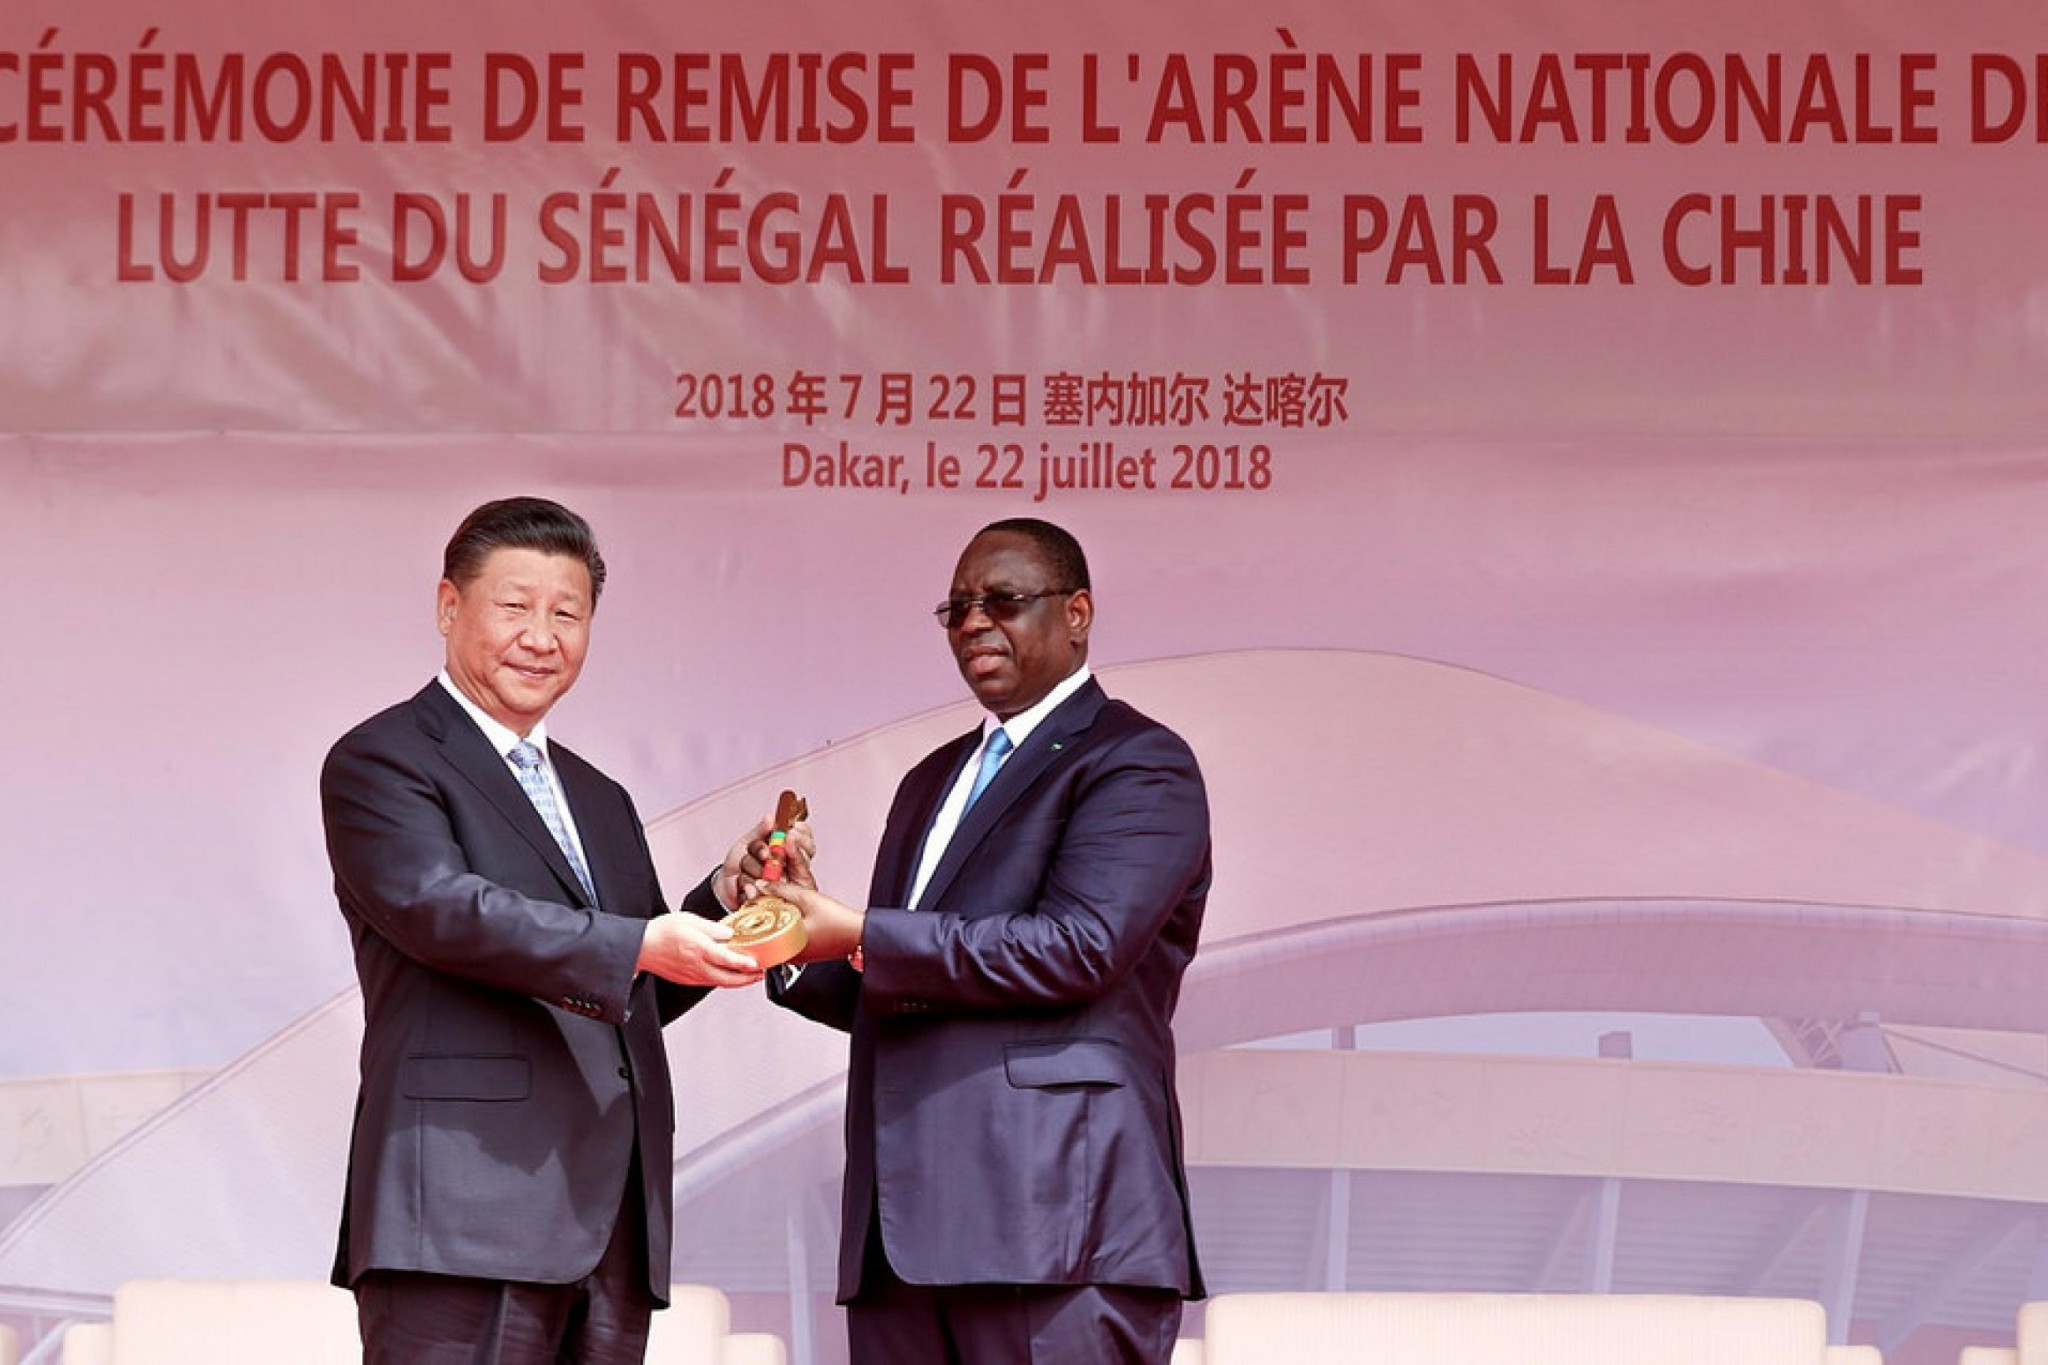 China's President Xi Jinping attended the grand opening of the Wrestling Arena of Senegal ©UWW